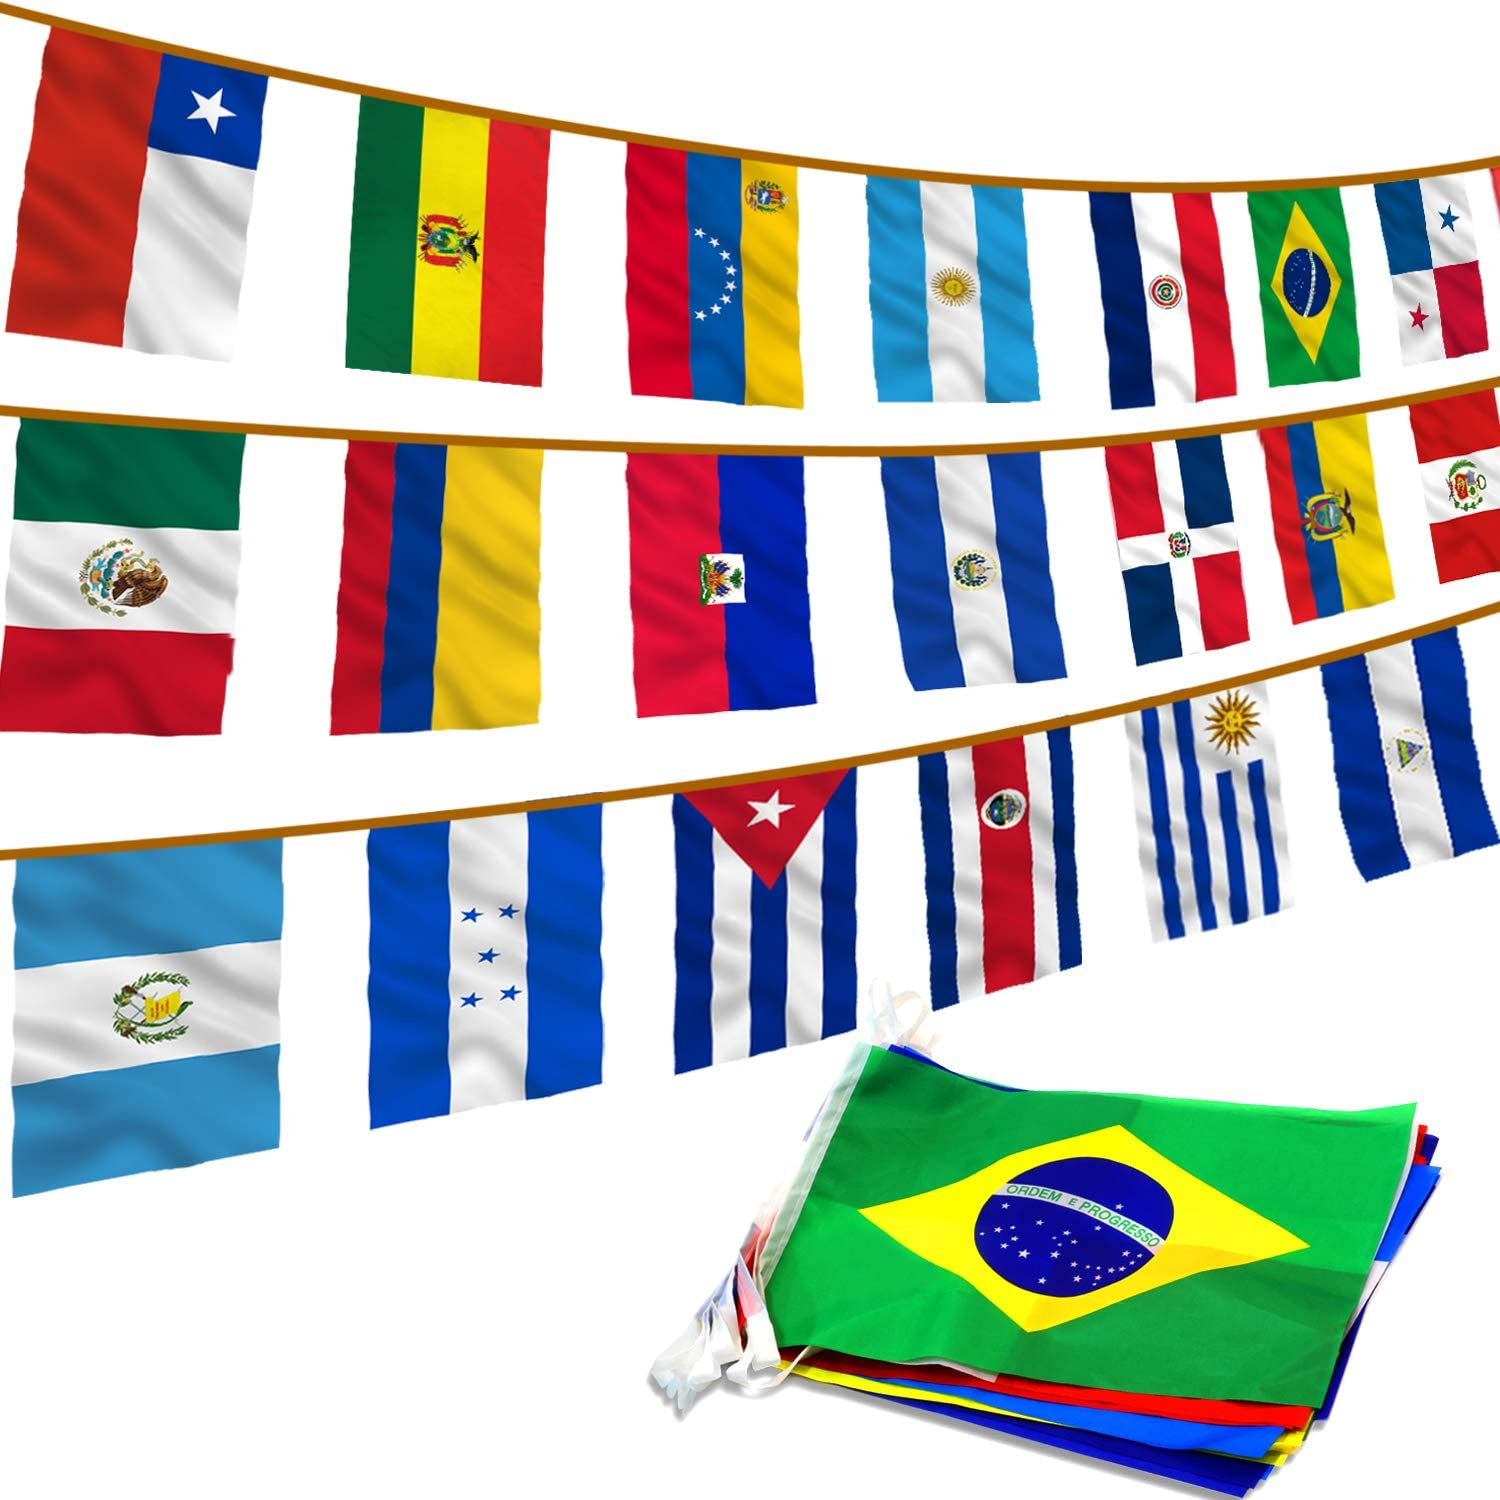 Anley Latin America 20 Countries String Flags - Assorted Latino Flag Banners for International Events Conference Party Decoration Sports Bars - 30 Ft 20 Flags